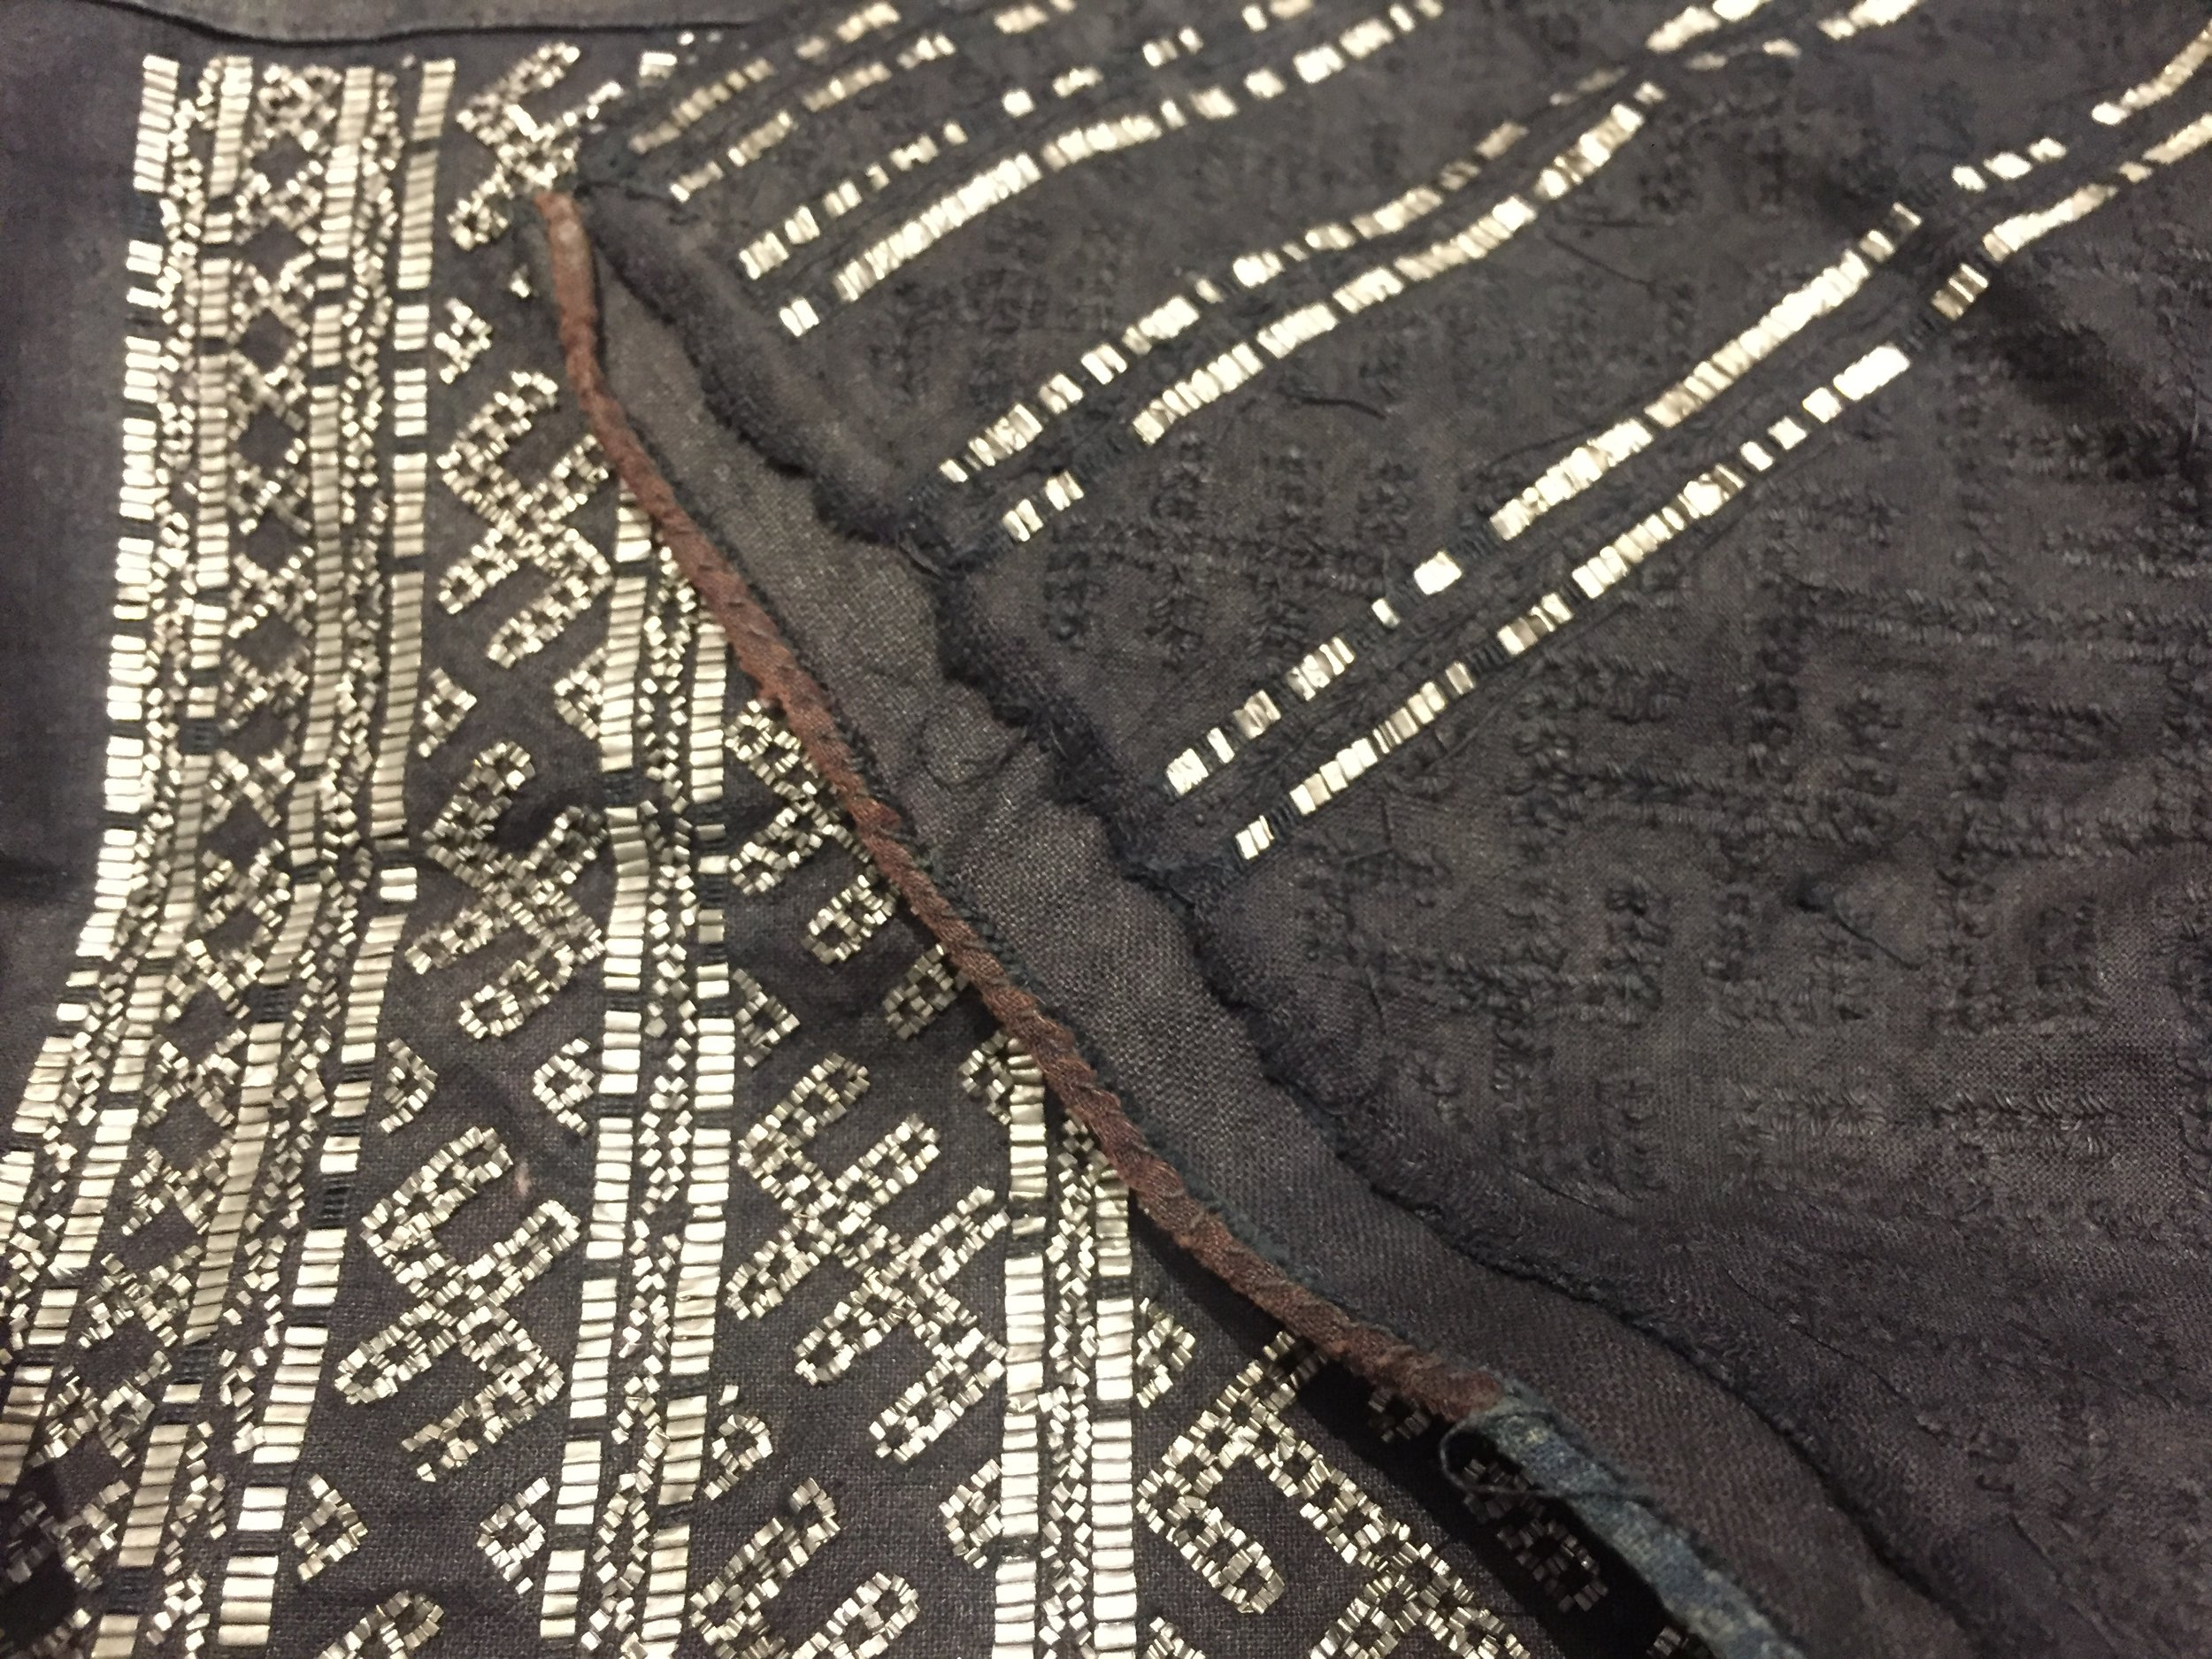 Incedibly, the beautiful black anchoring stiches from the earlier picture will then be made almost invisible by dyeing the fabric in indigo. Slivers of tin strips are then cut and woven by hand into these anchoring stitches, so the embroidery is visible only on the right side of the fabric.